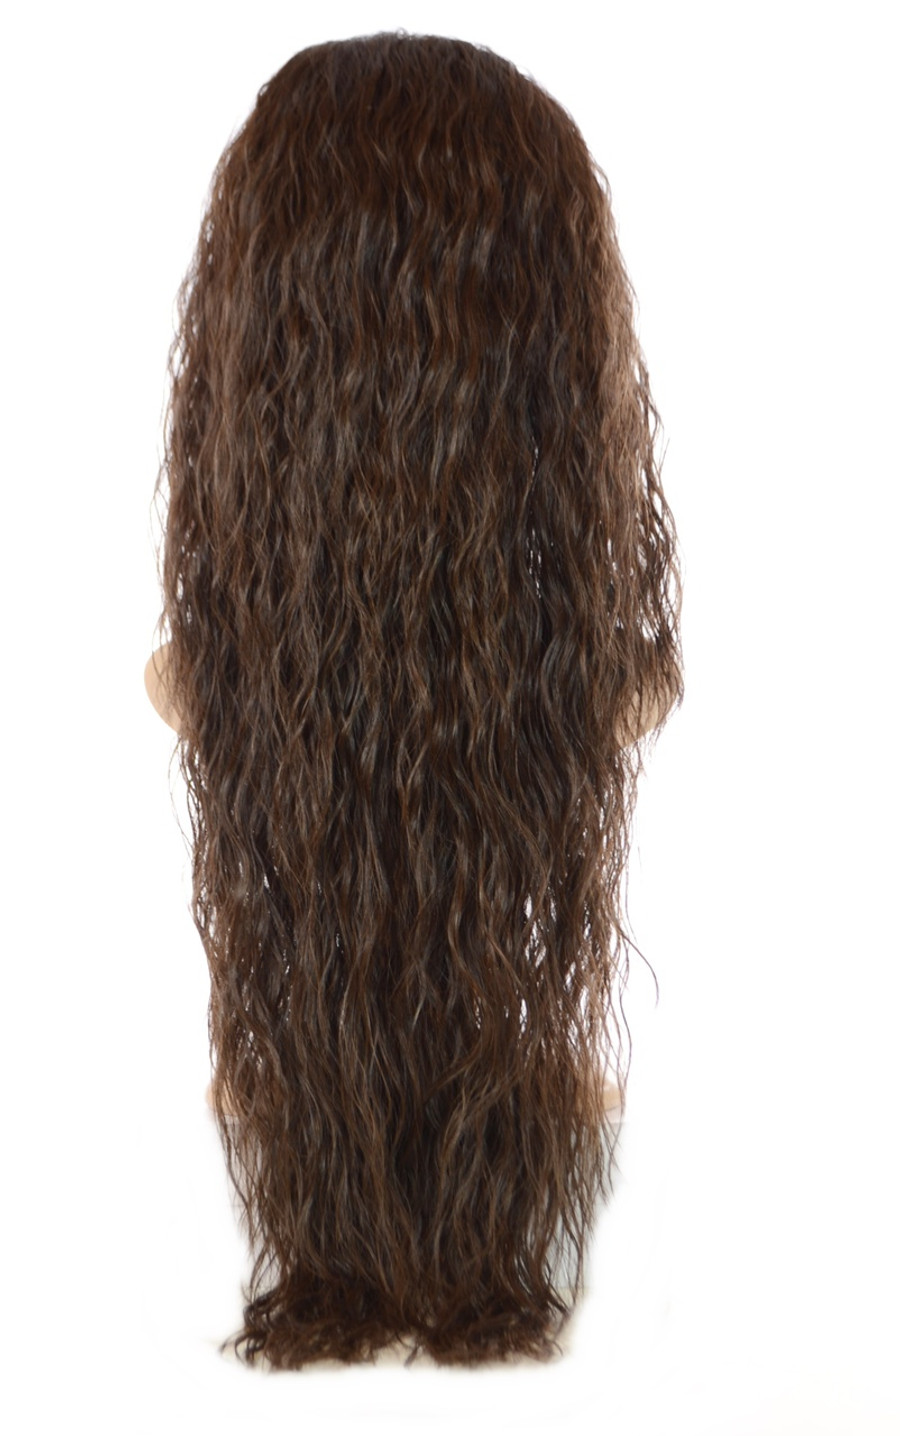 V Tress One Weft Hair Extension Dark Chocolate